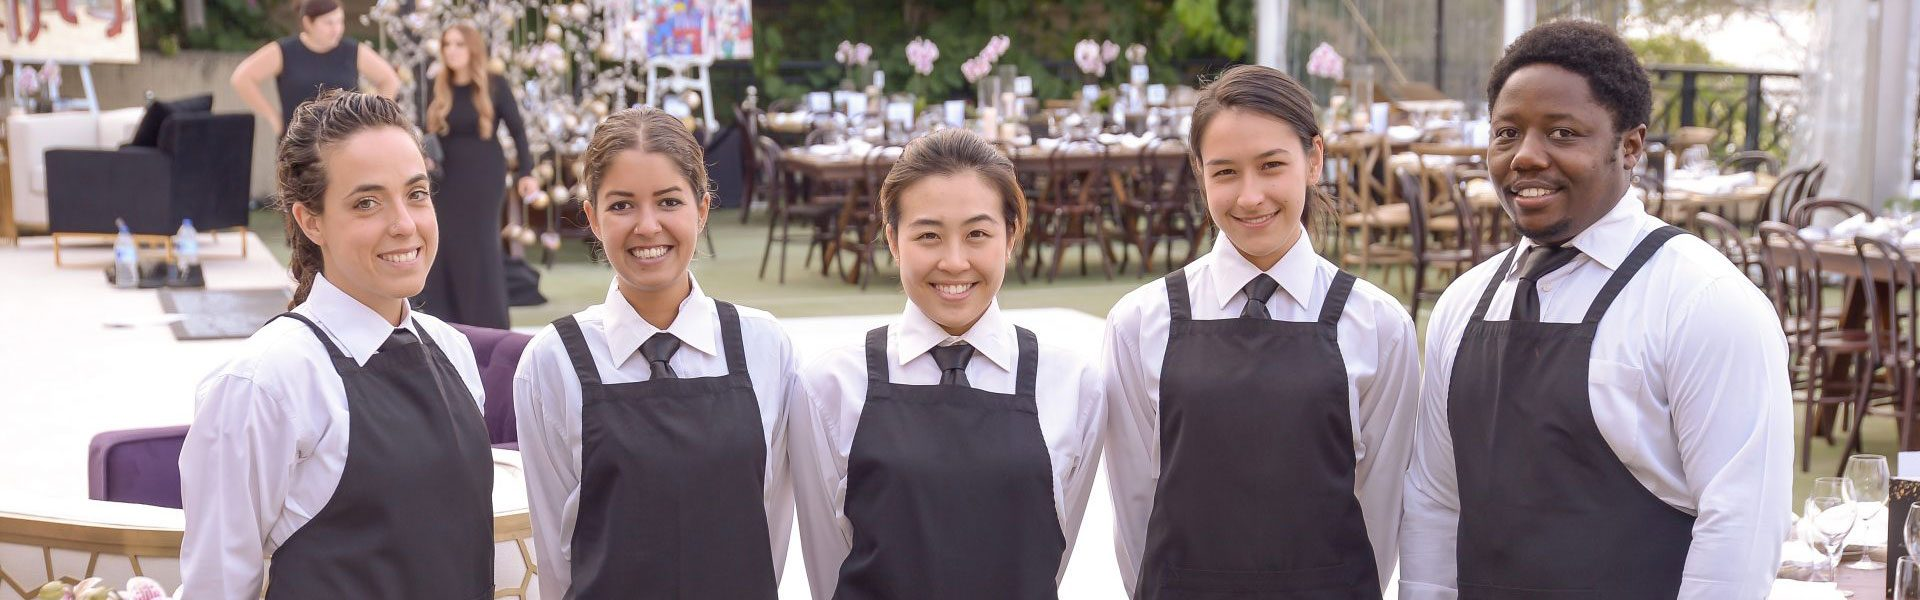 Comestibles competent catering team